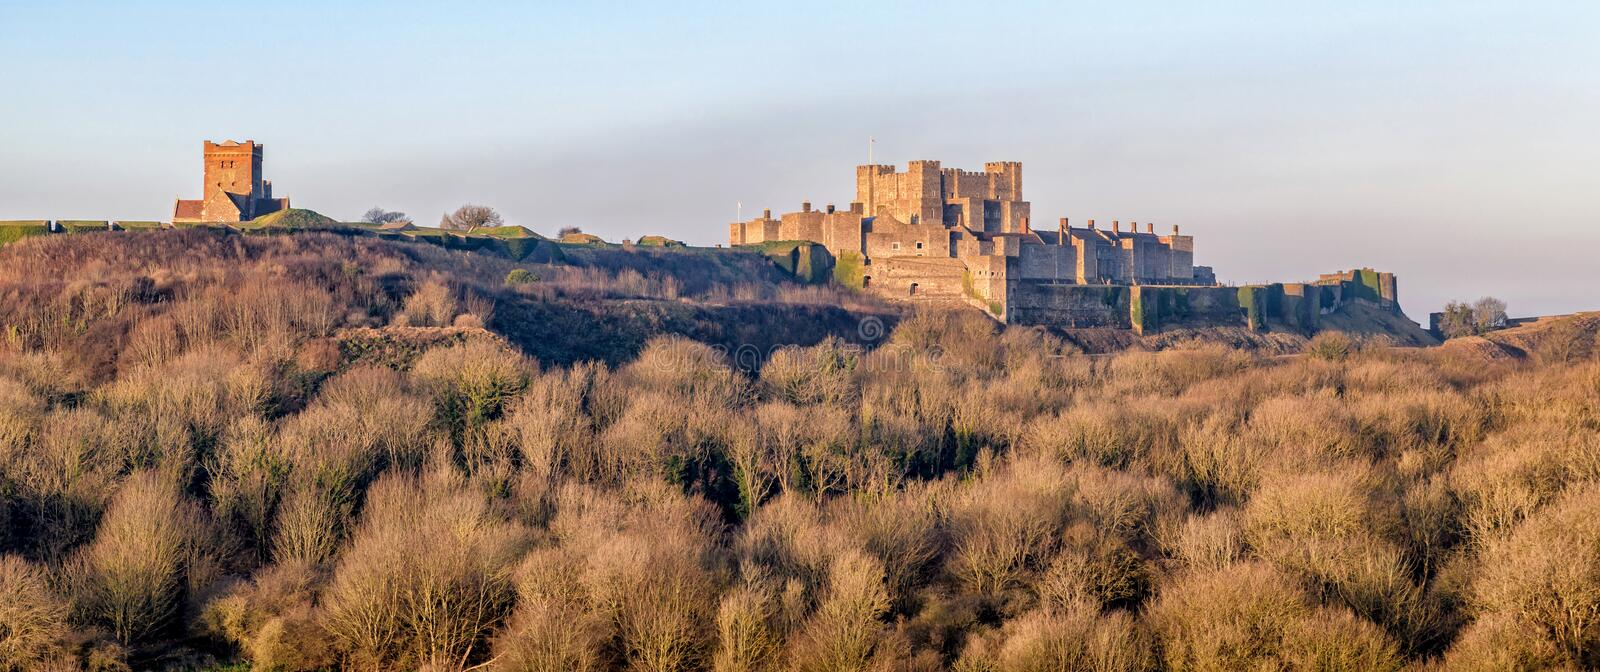 Dover castle and saxon church in kent england royalty free stock photography